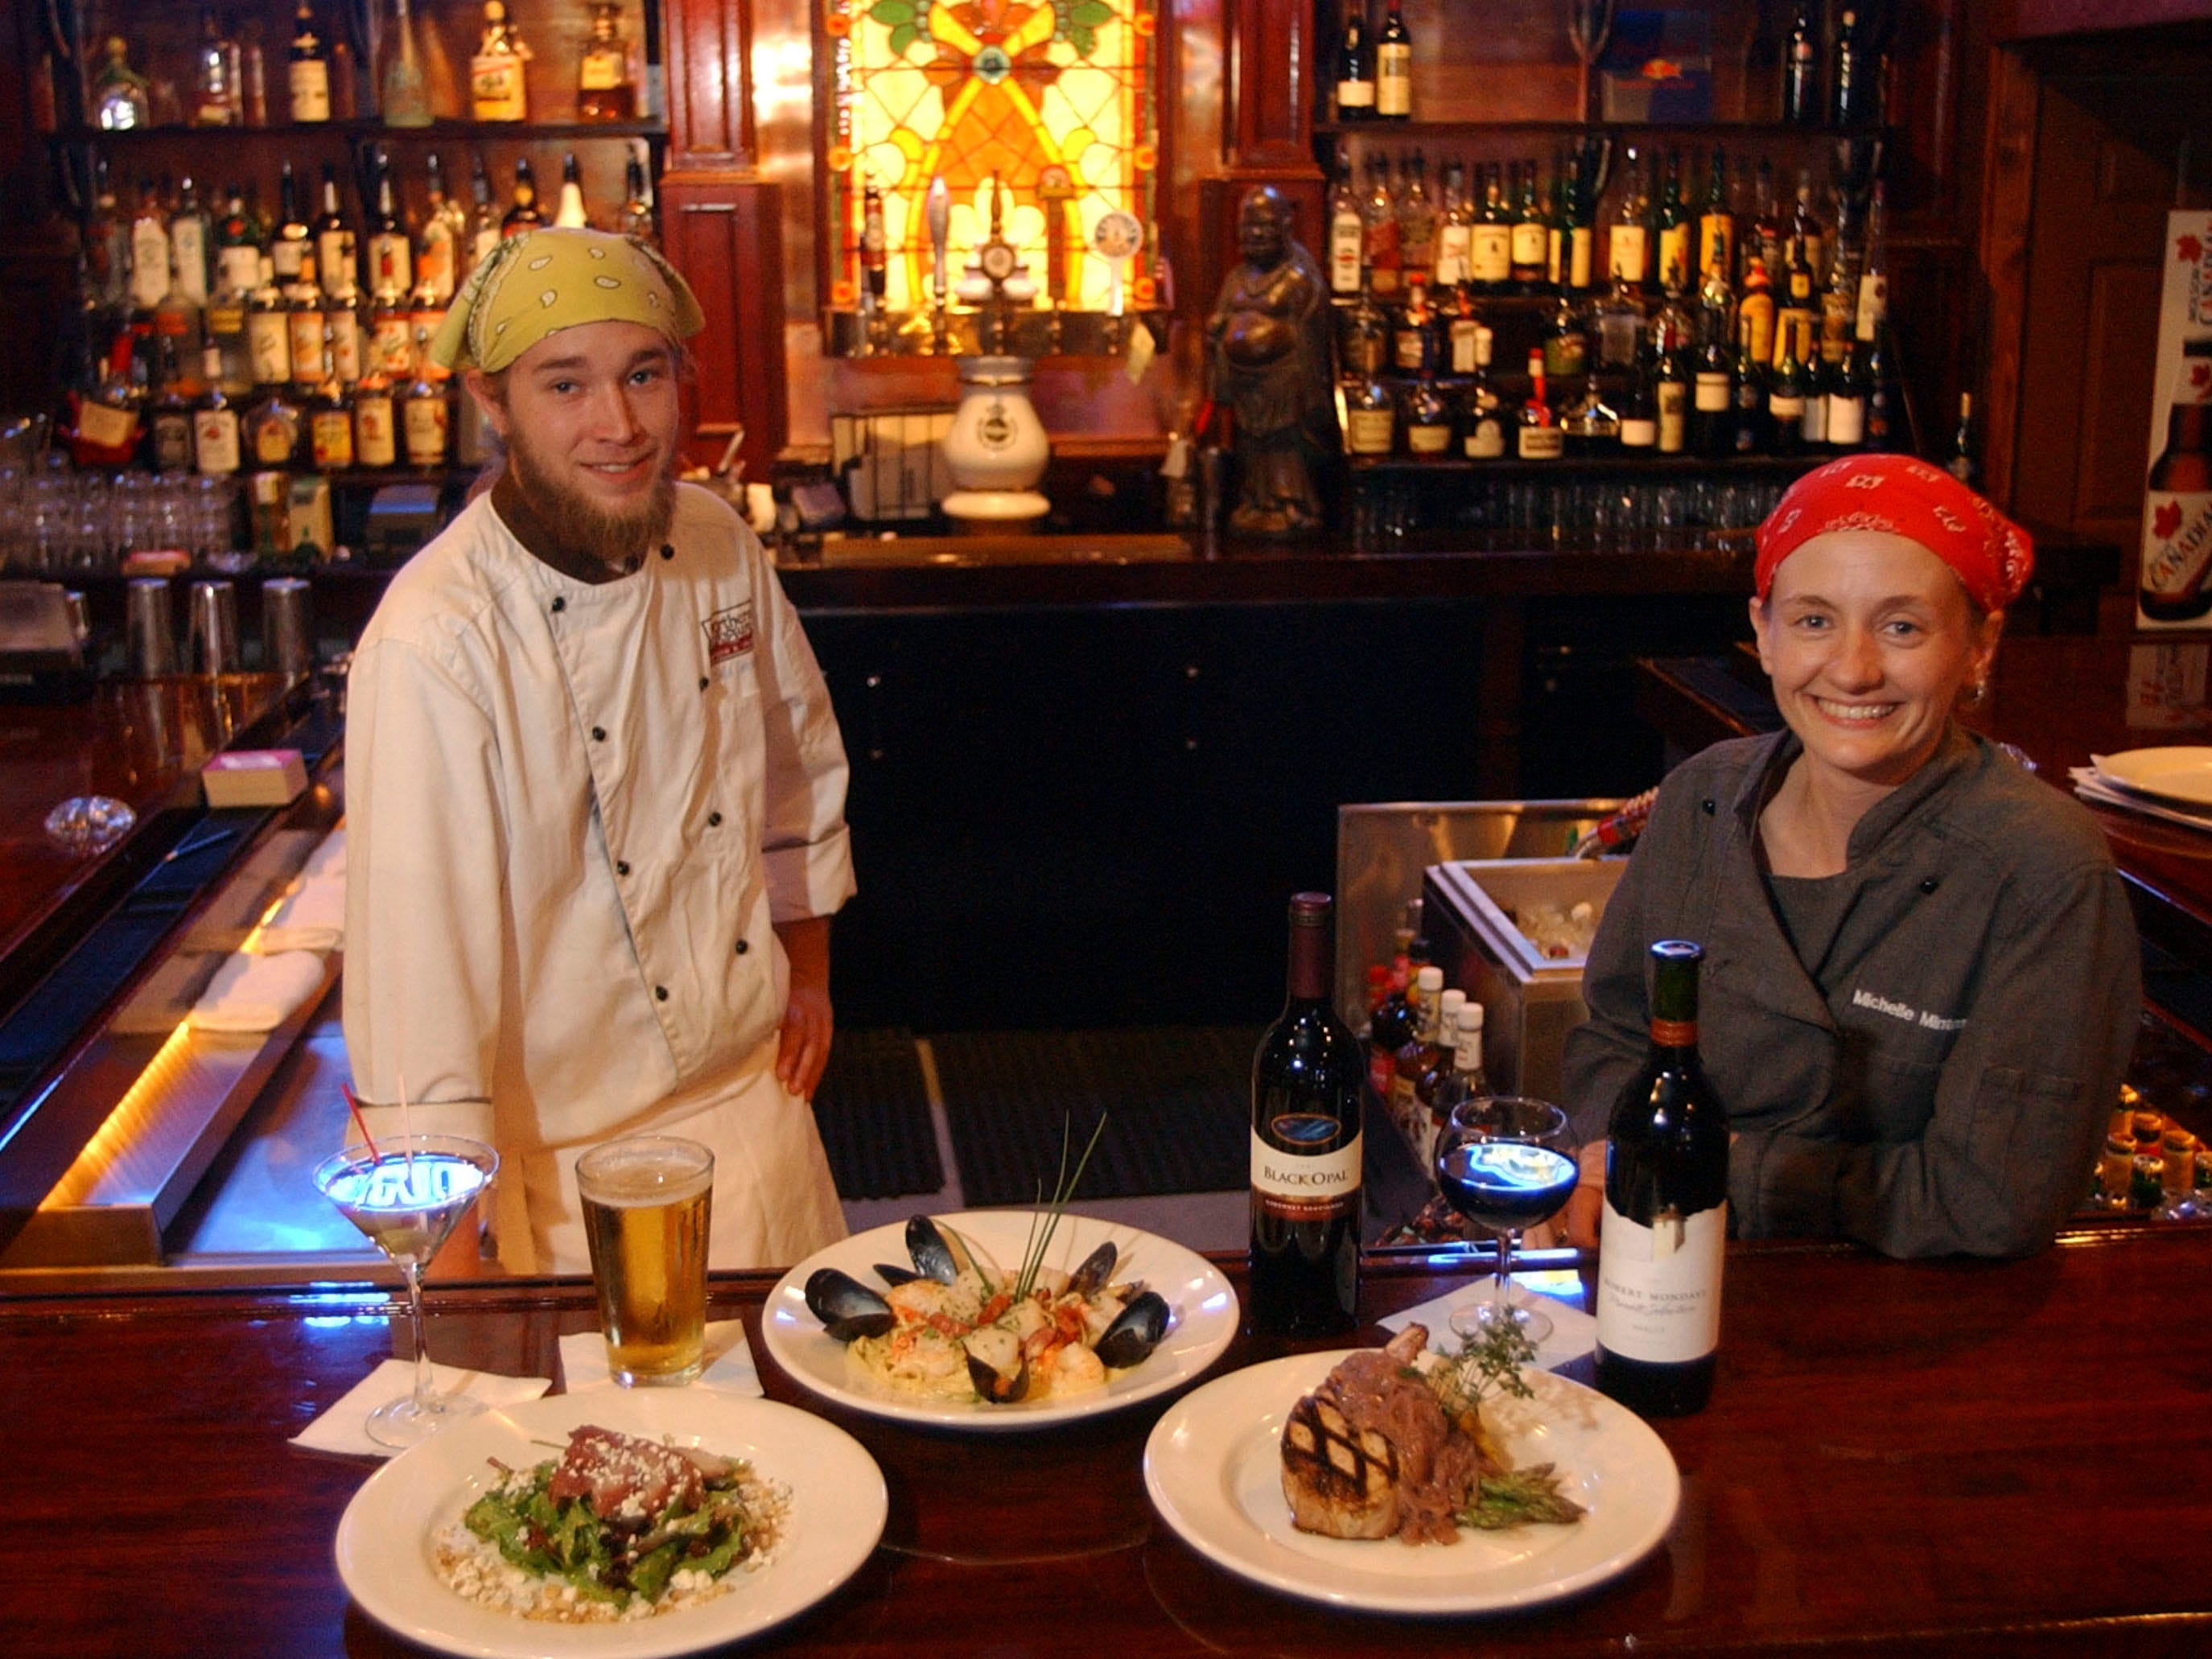 Northern Exposure Executive Chef Christopher Everett and Michelle Minton in 2003. Northern Exposure is a new restaurant on Kingston Pike at the Stone Crest Shopping center in Farragut.